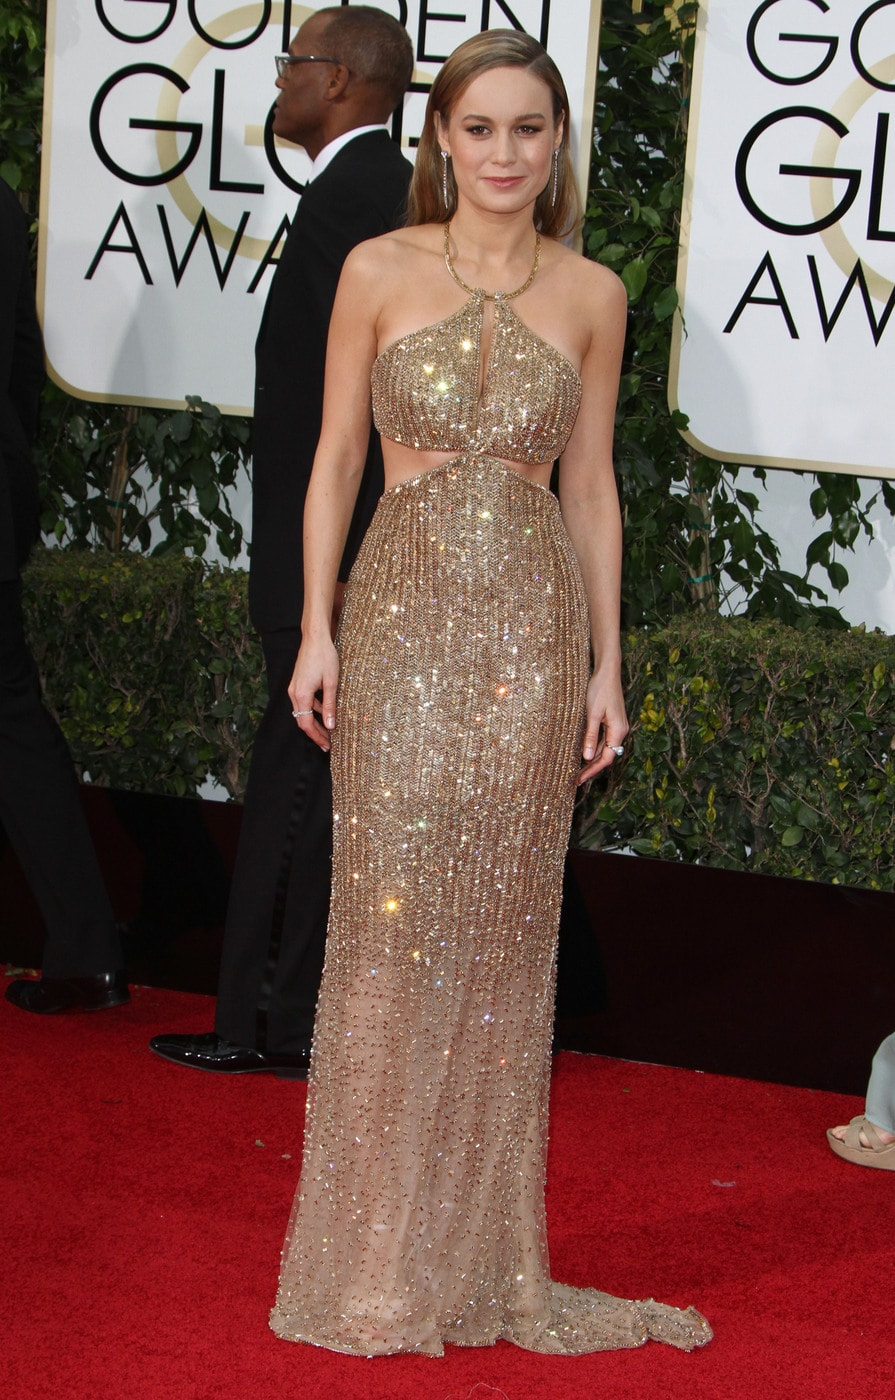 Brie Larson at the 2016 Golden Globes